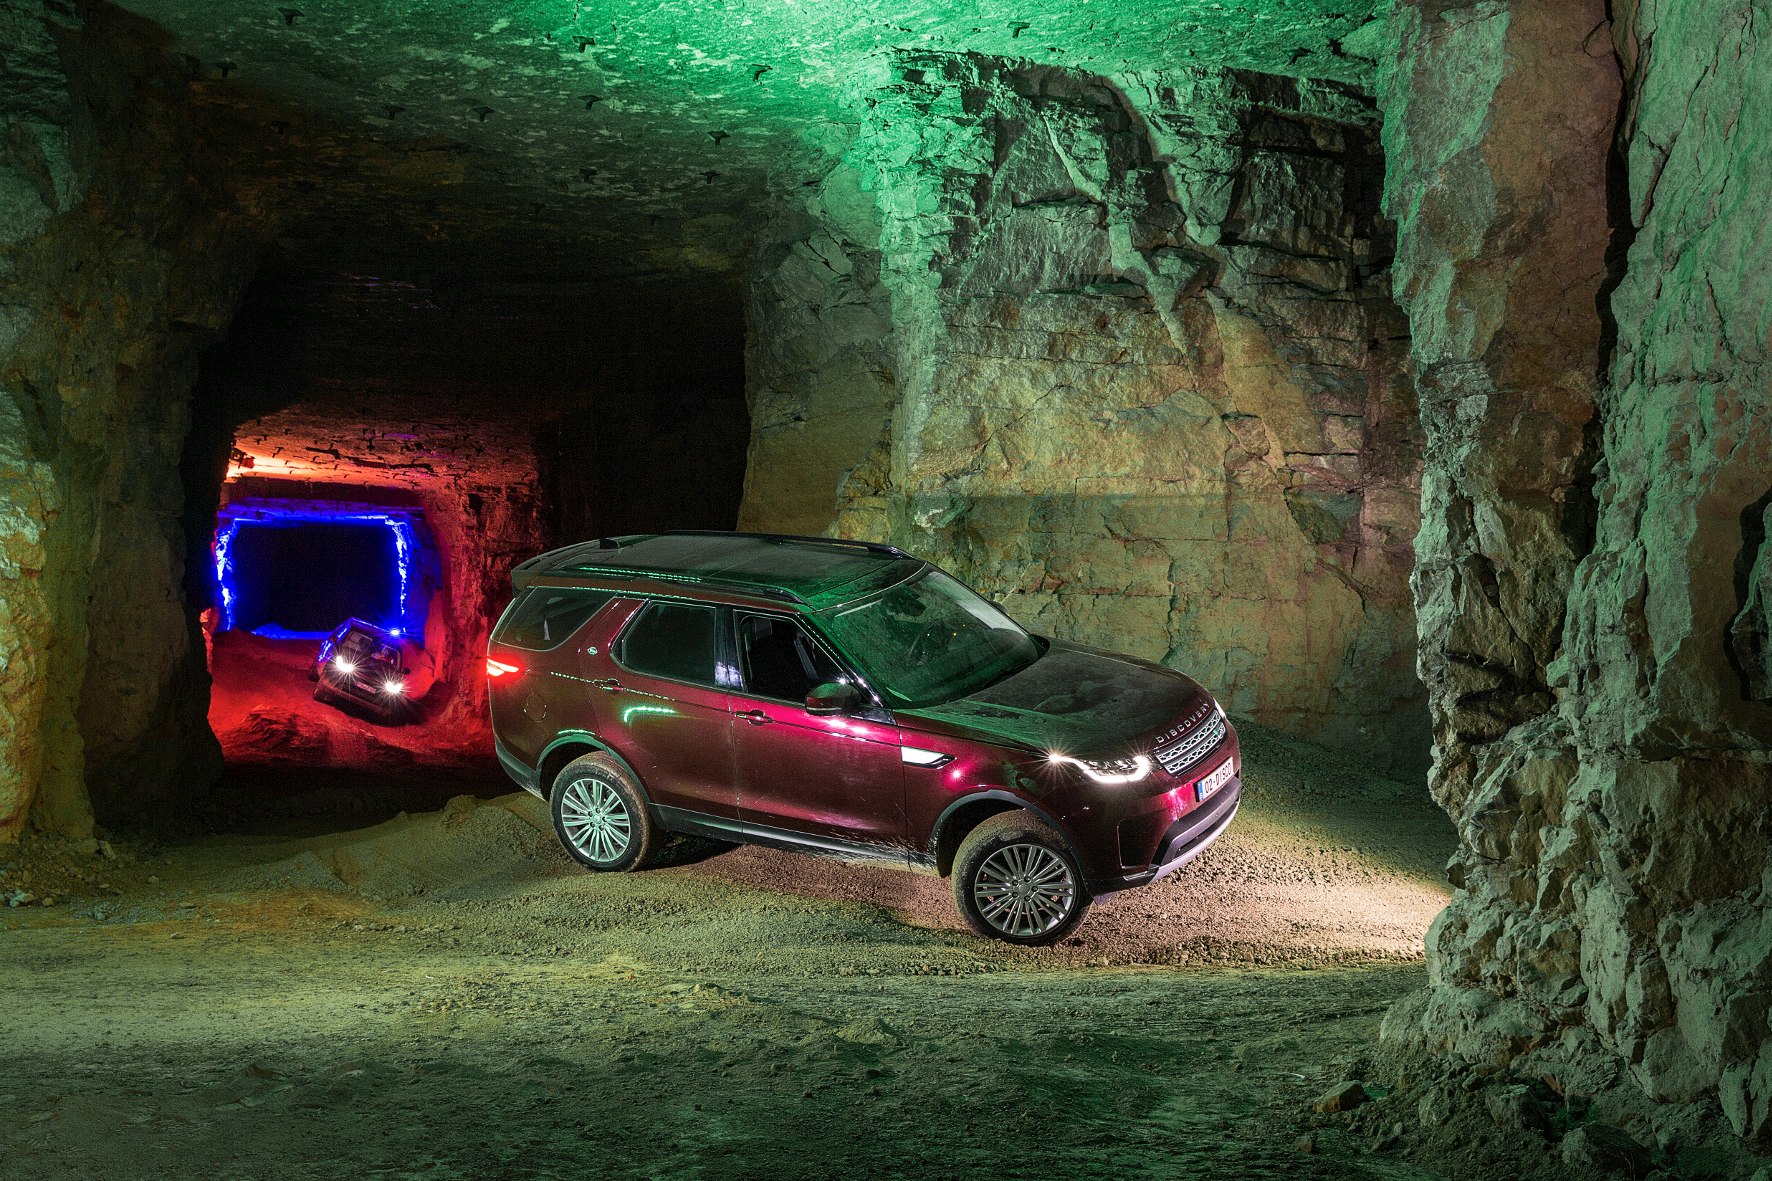 Land Rover Discovery: Selbst unter Tage überzeugend